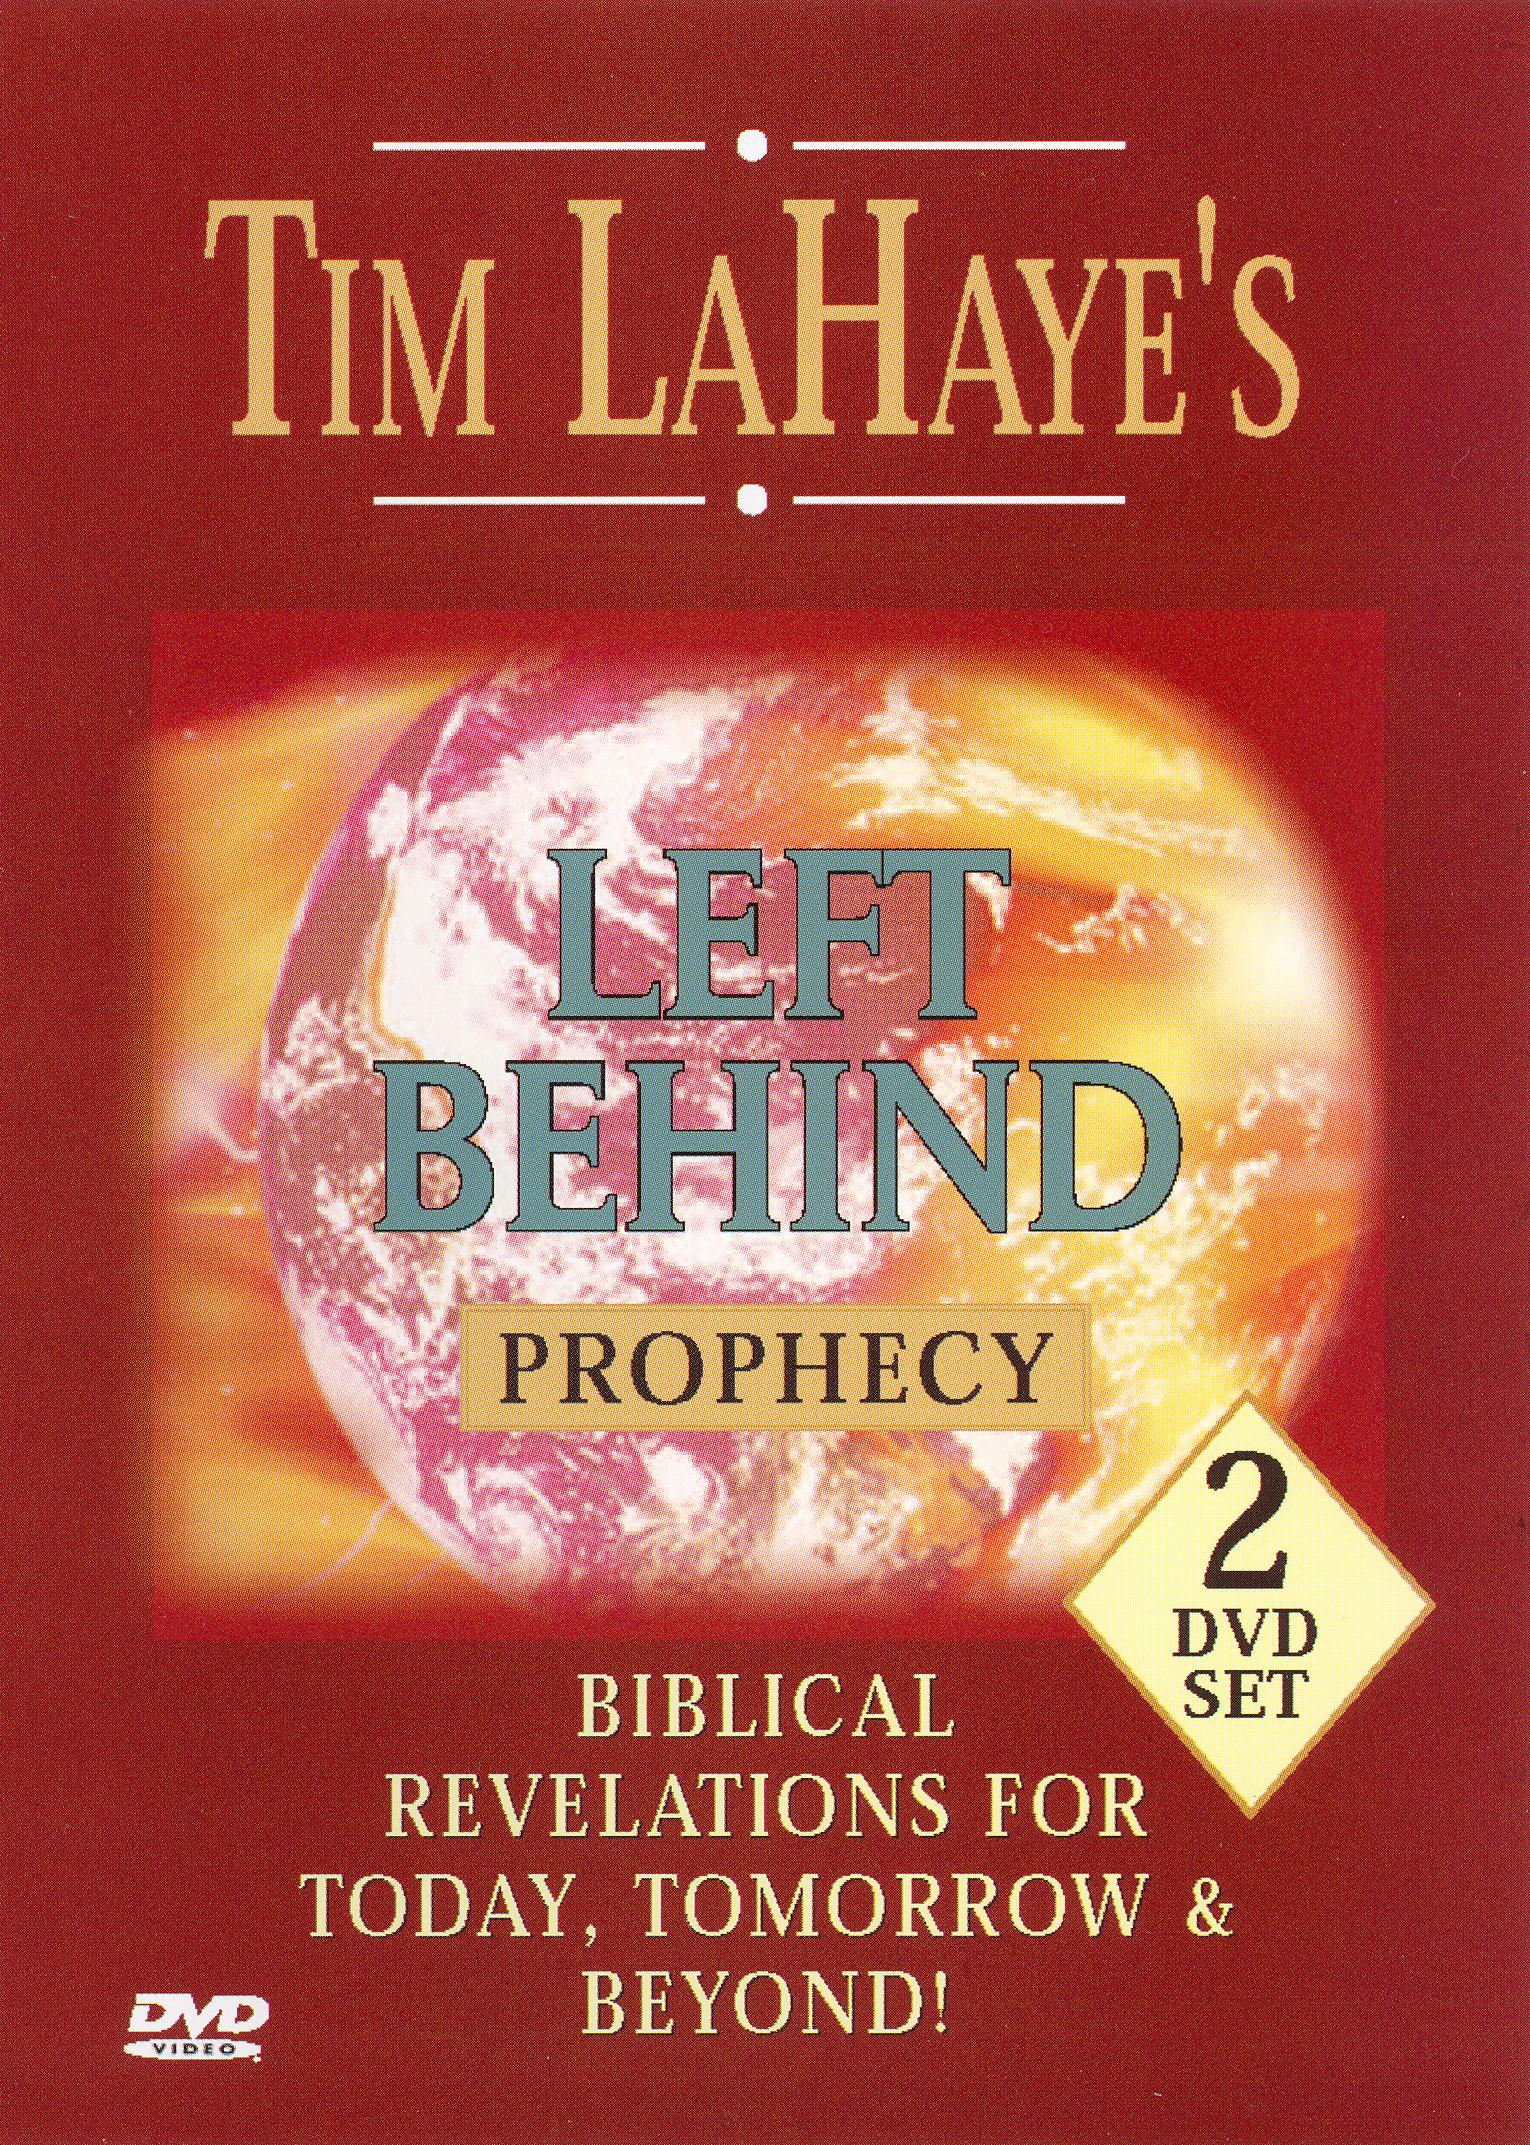 Tim LaHaye's Left Behind Prophecy